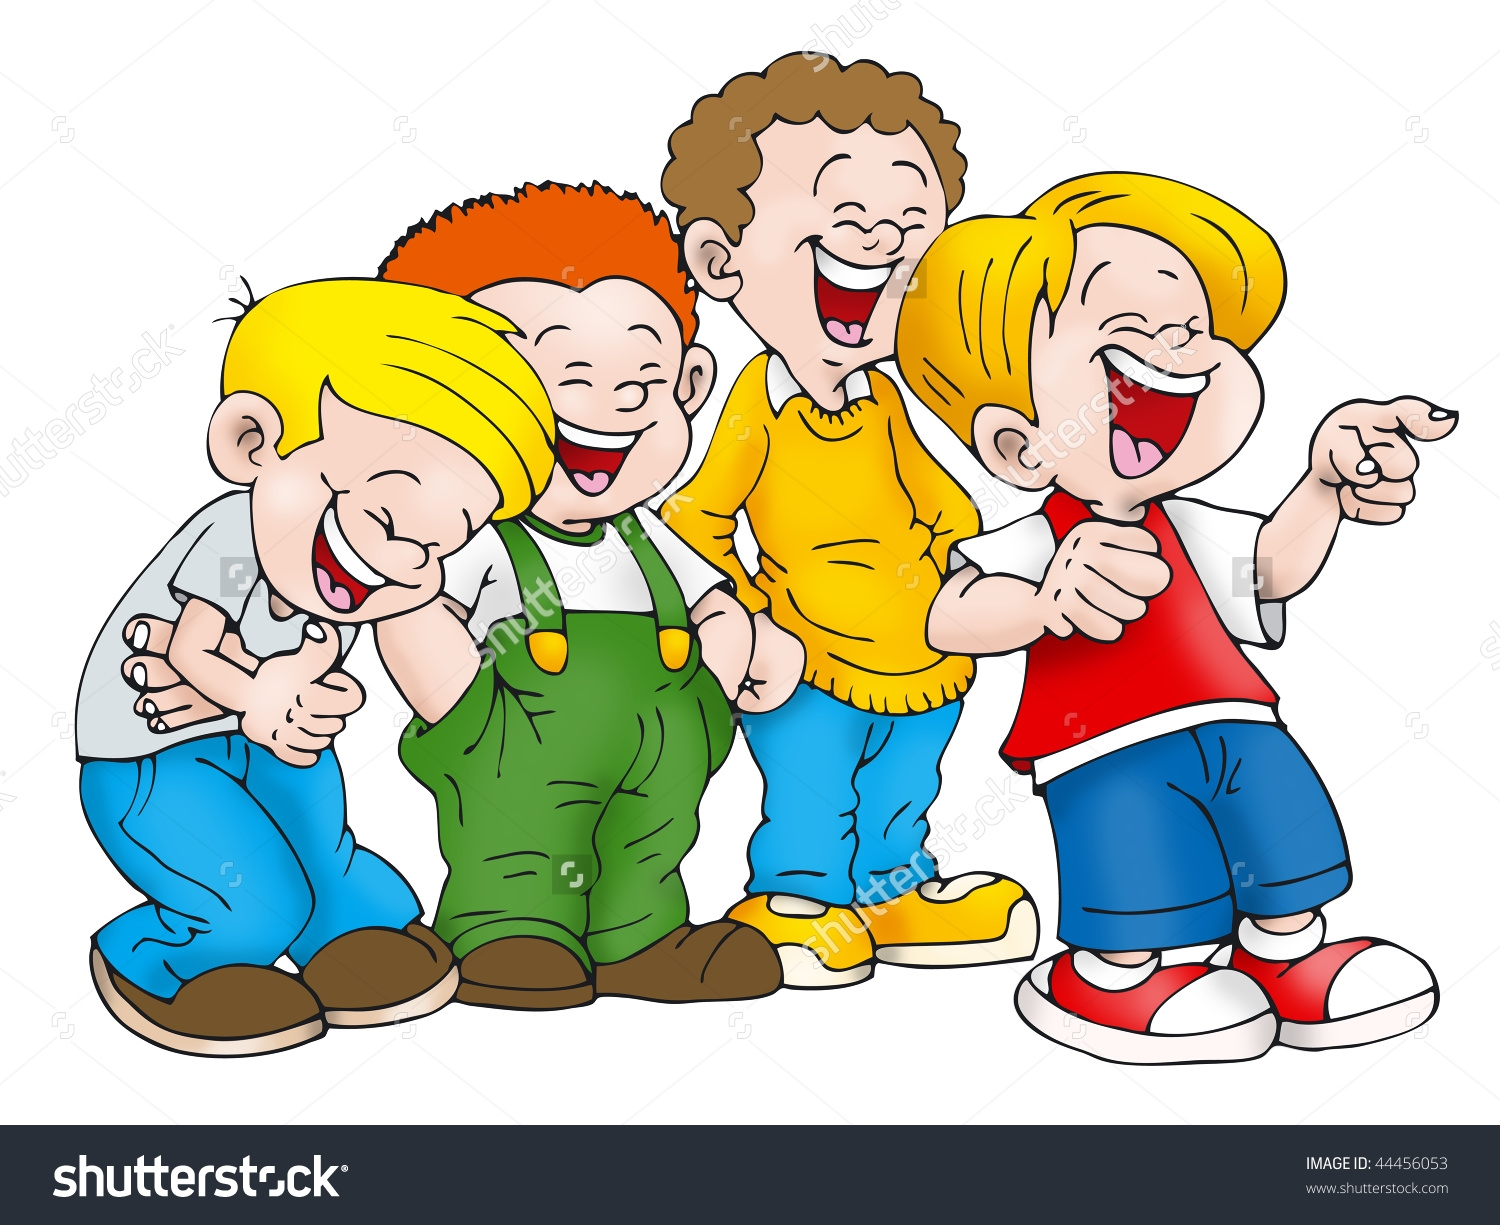 Clipart laughing. Boy clipartfest laughterclipart